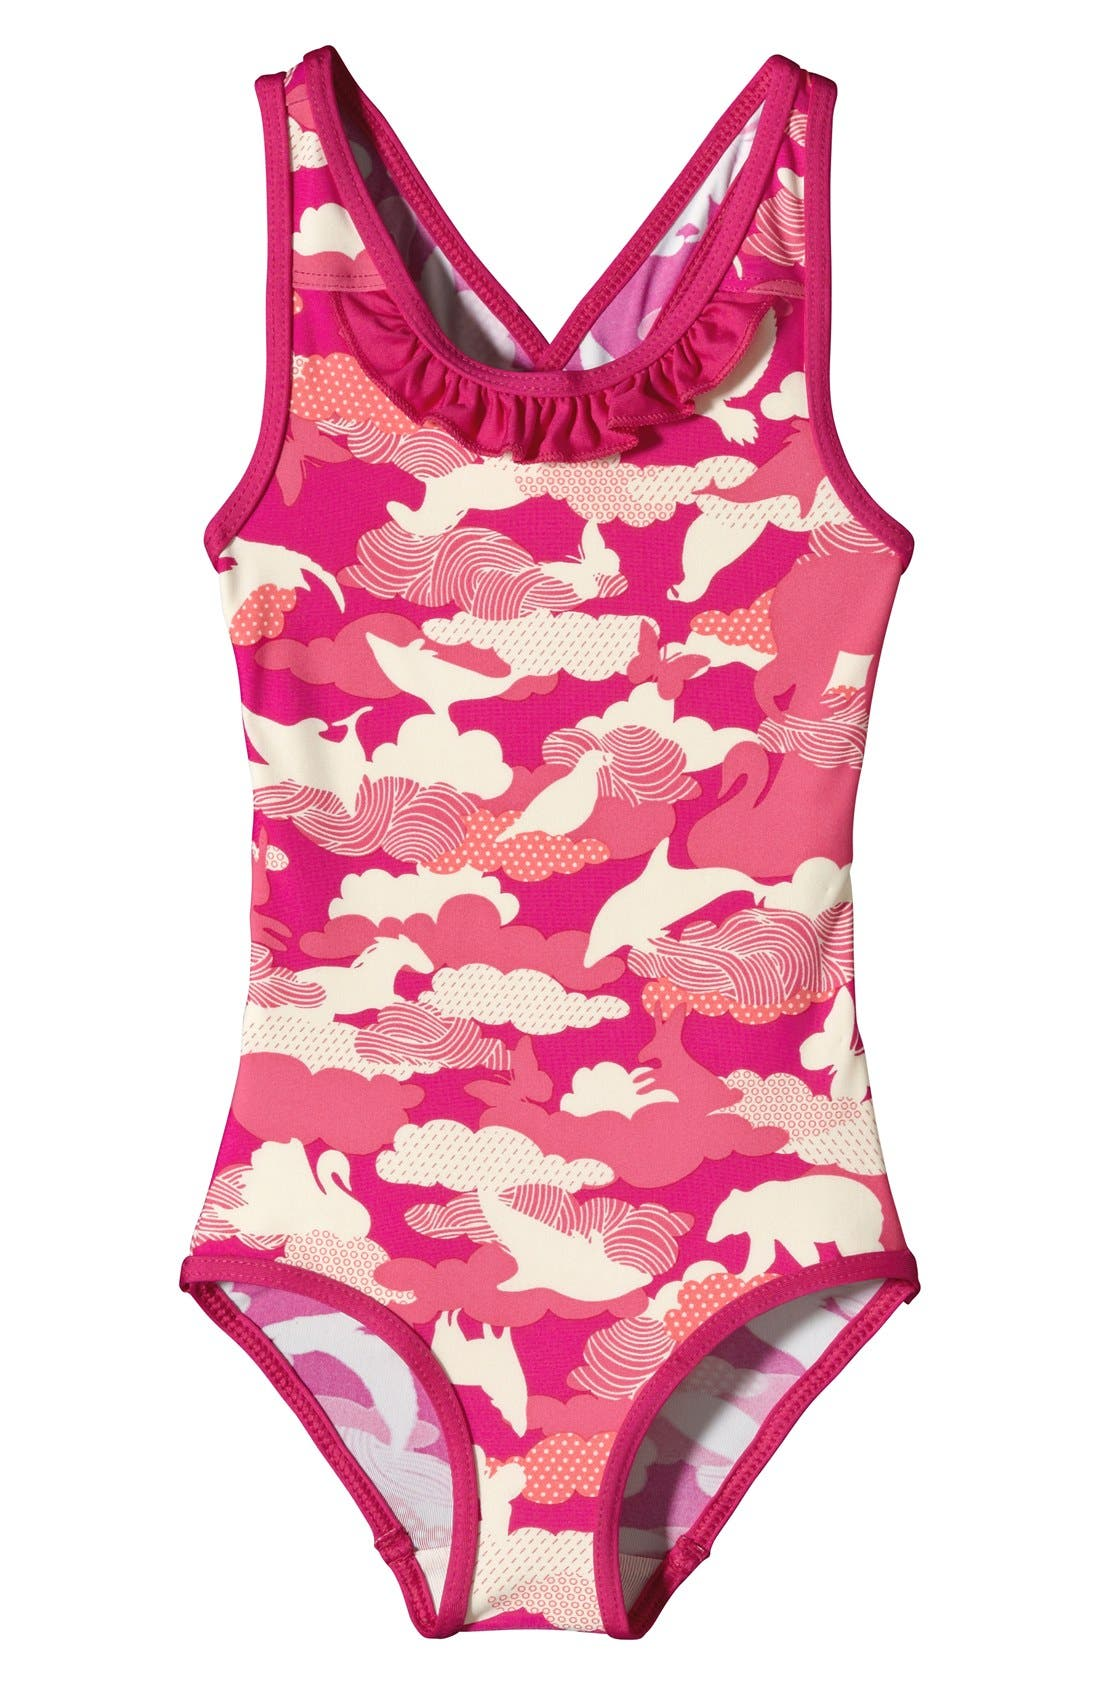 Main Image - Patagonia 'QT' One-Piece Swimsuit (Toddler Girls)